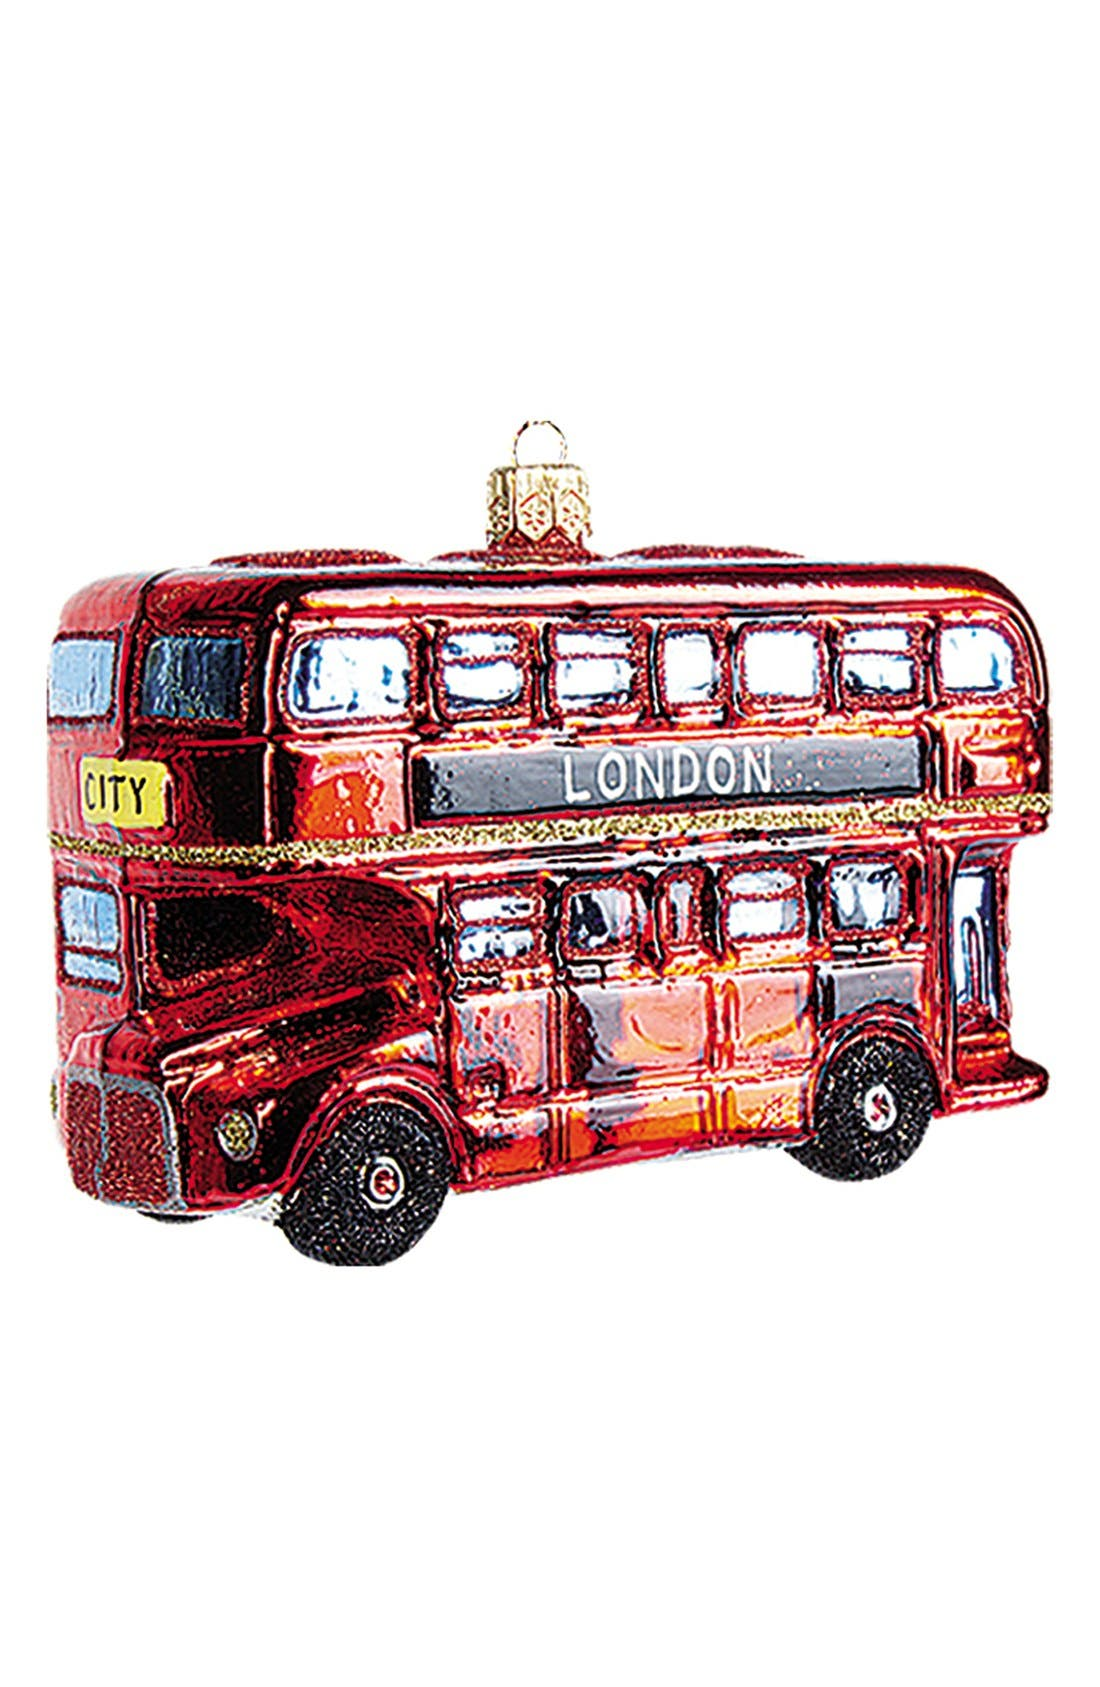 Alternate Image 1 Selected - Nordstrom at Home London Bus Handblown Glass Ornament